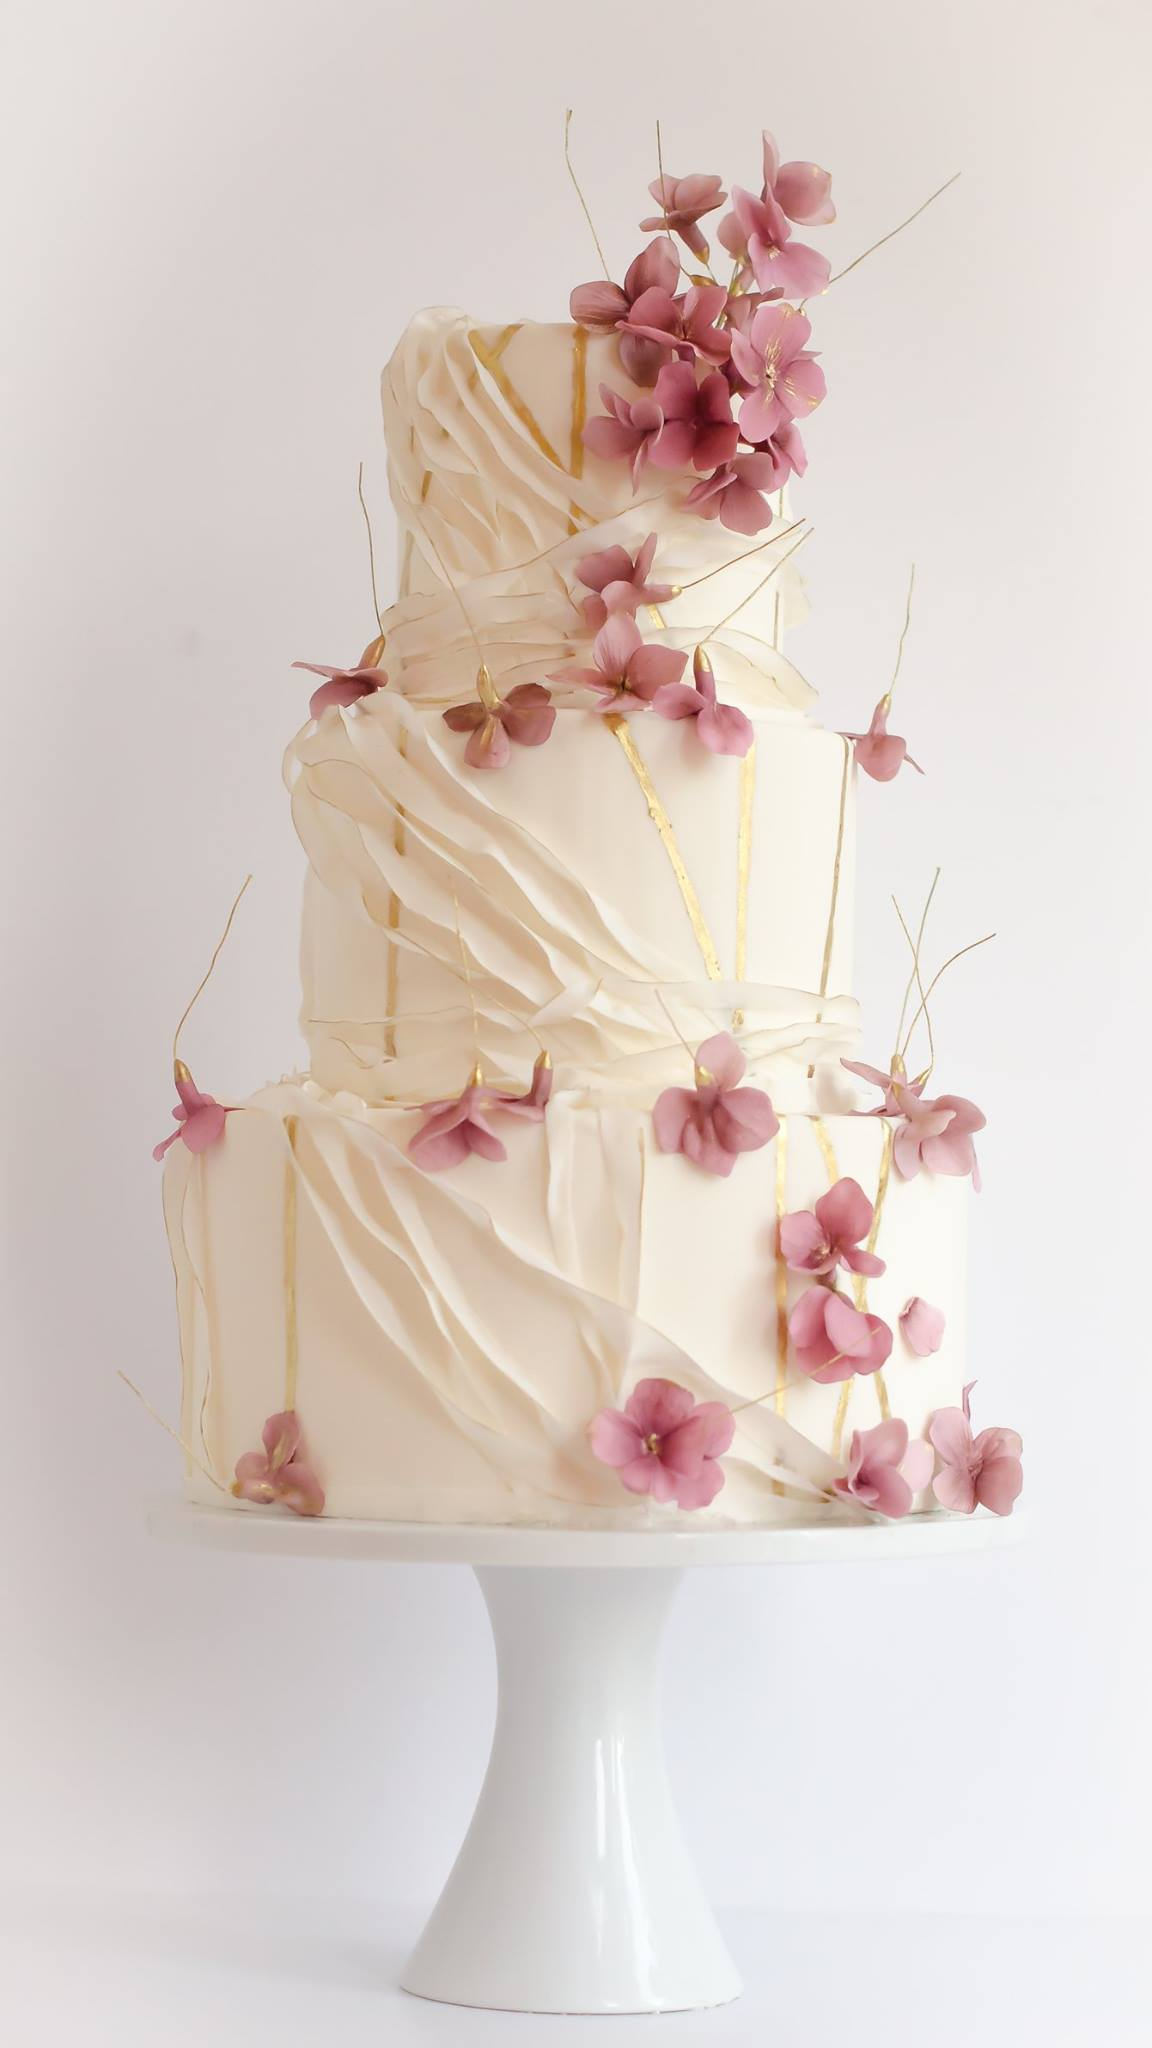 Chic Daily Wedding Cake Ideas (New!) - MODwedding